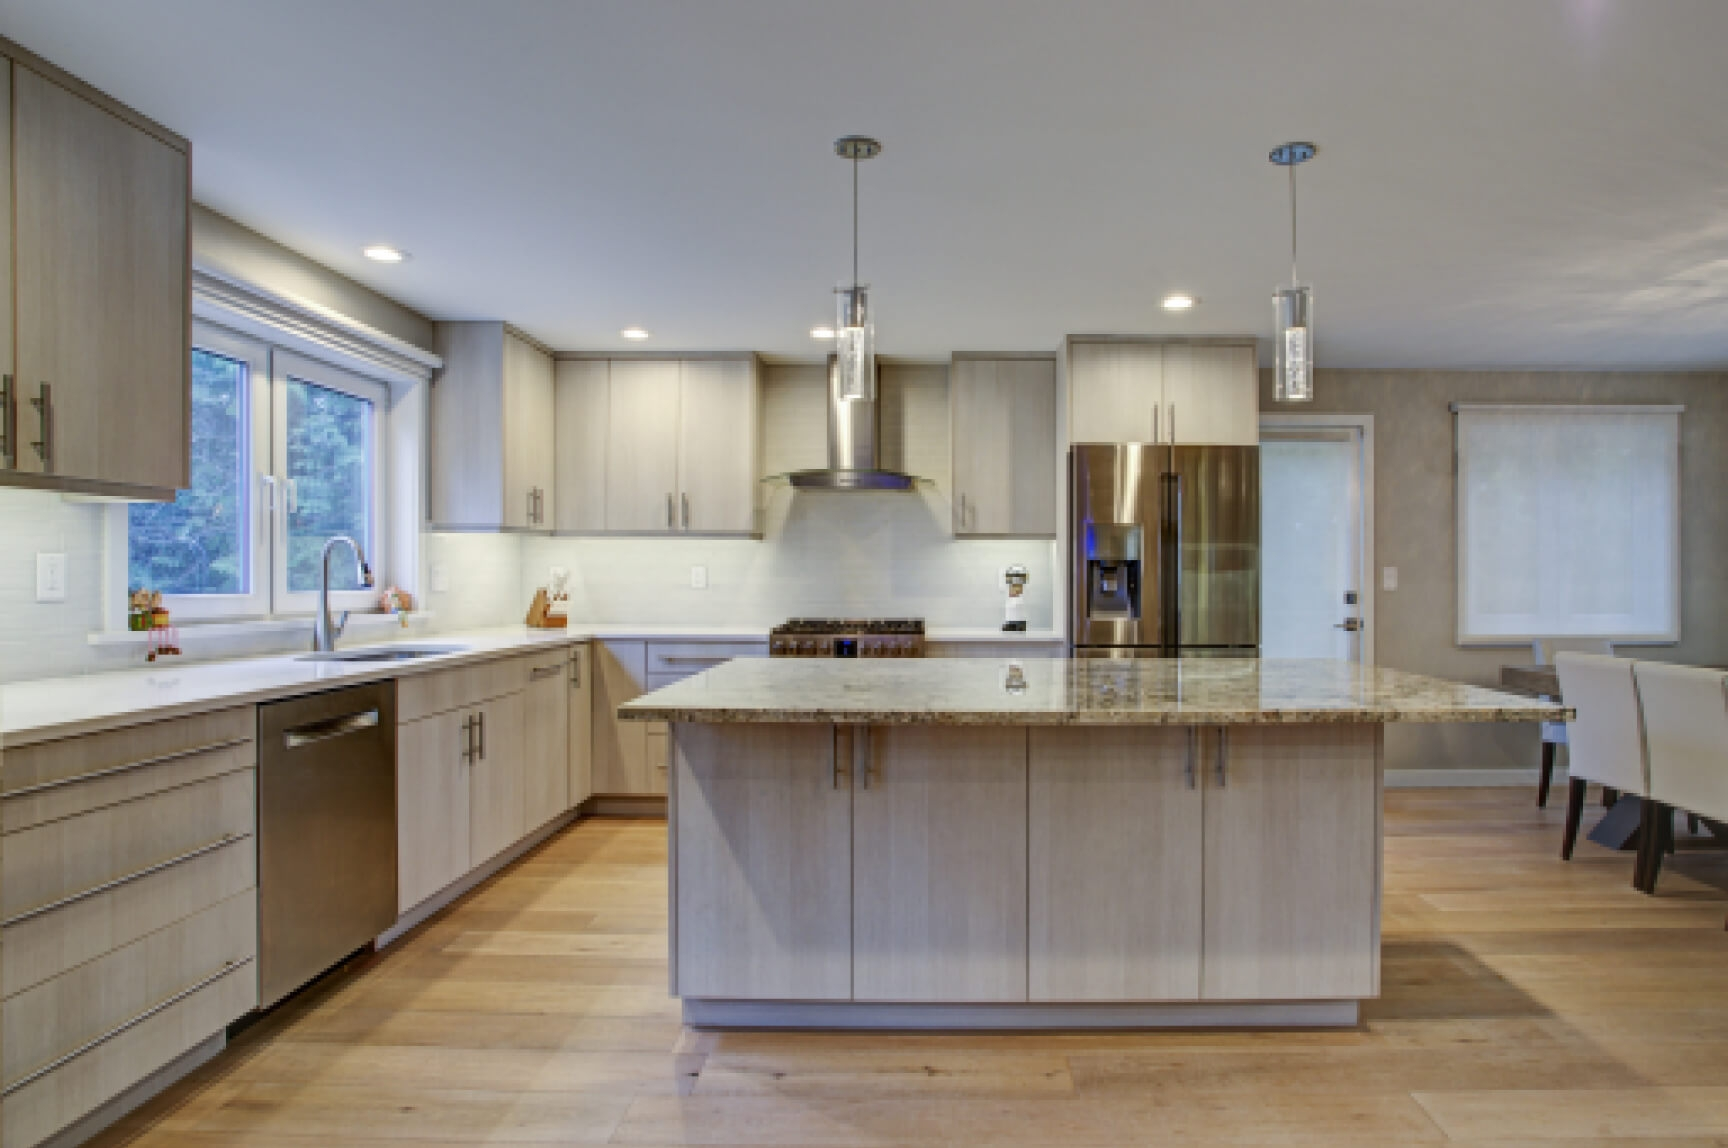 Johnsons Facade & Kitchen Remodel project